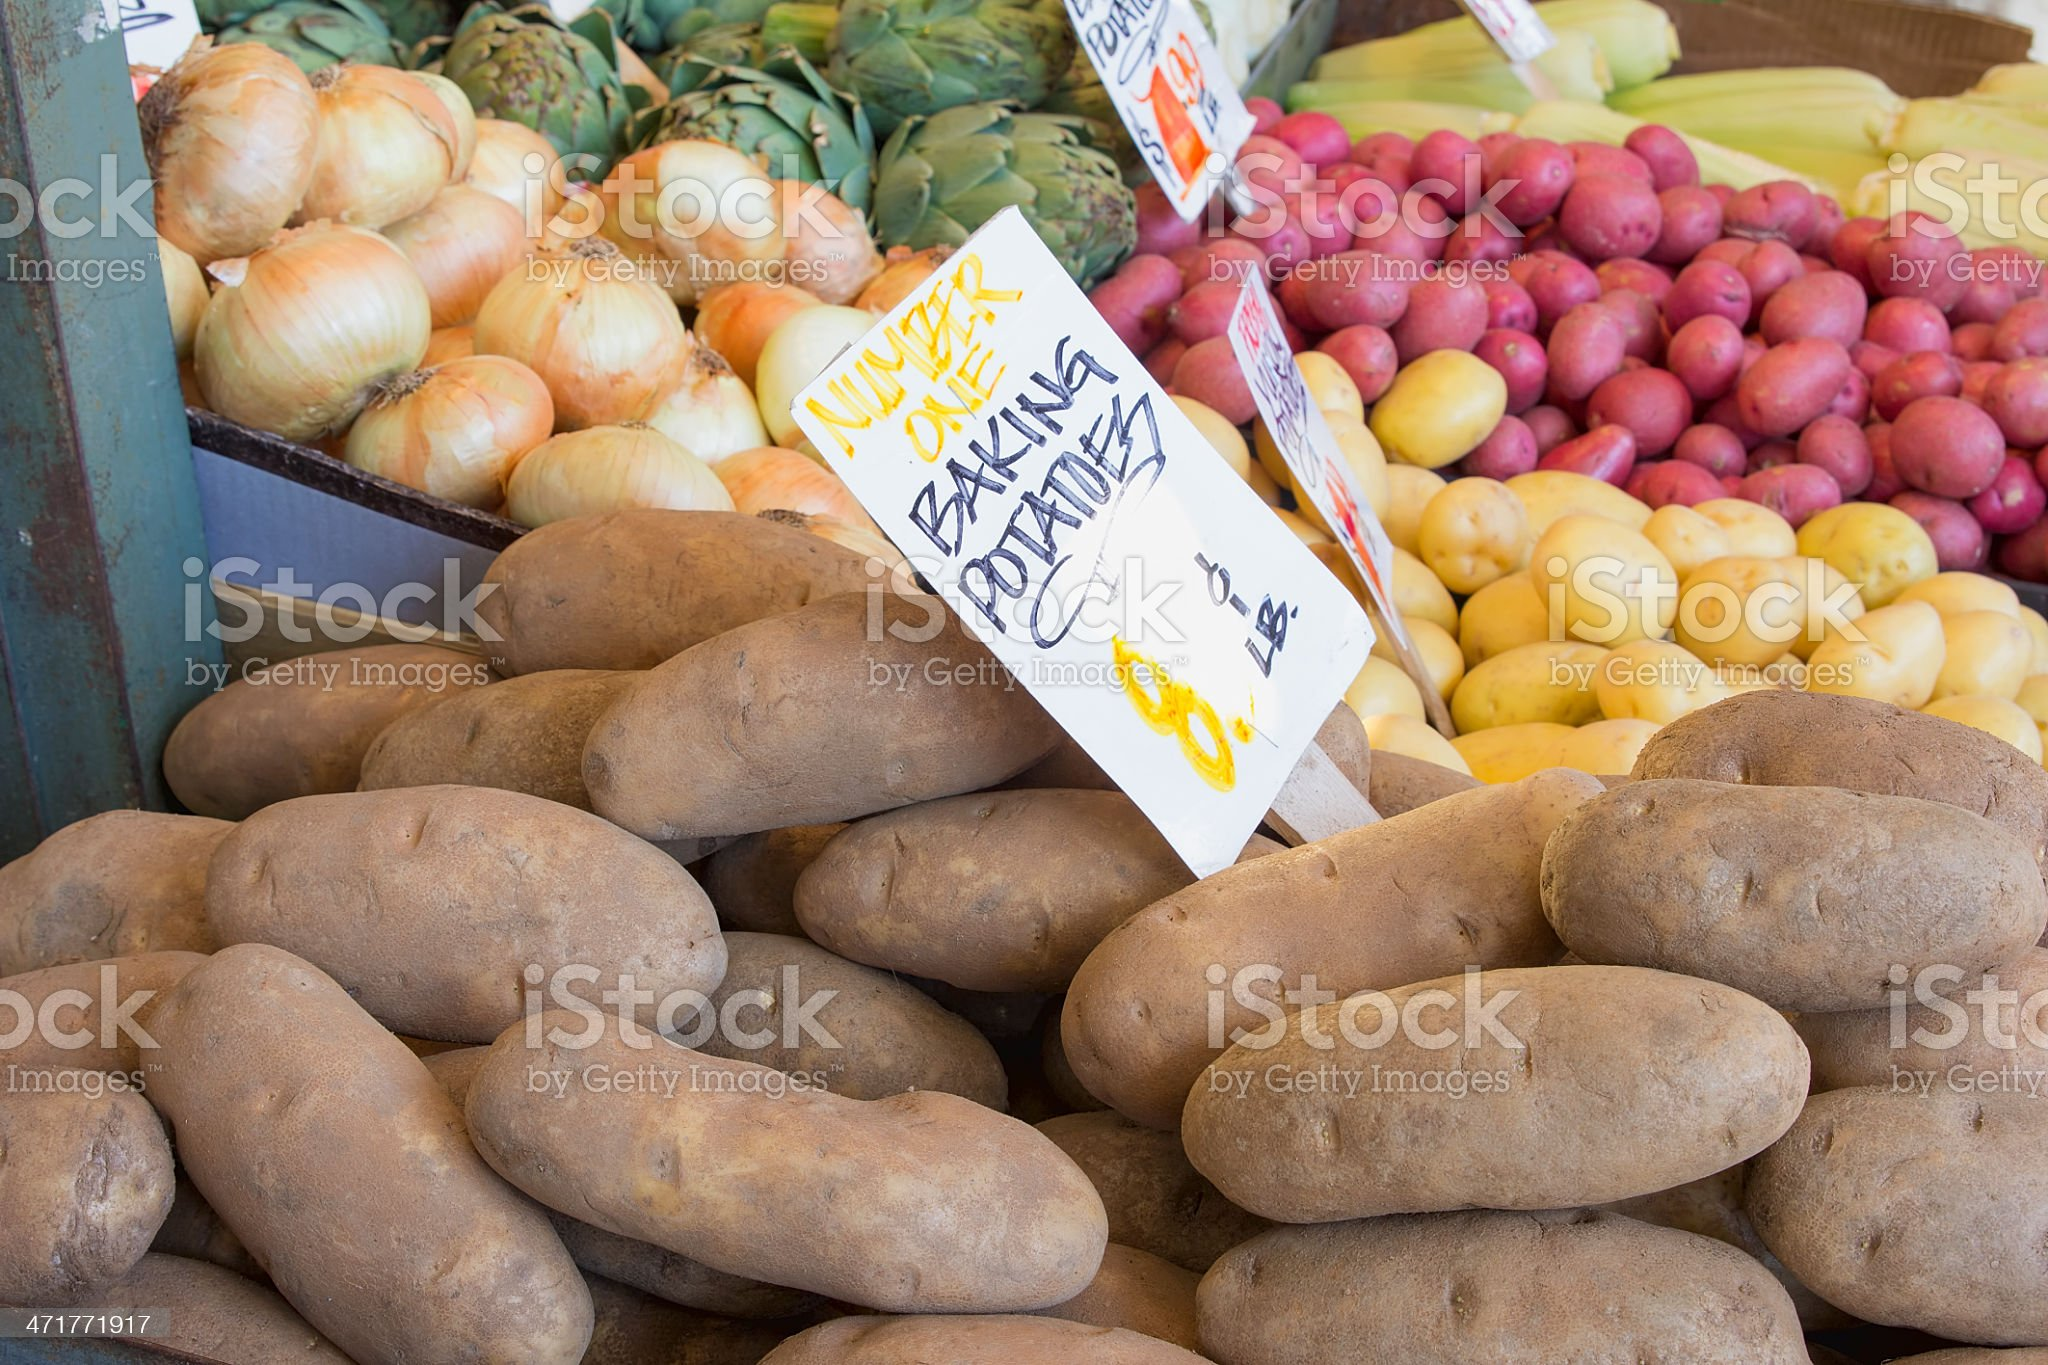 Baking Potatoes and Vegetables Stall Display royalty-free stock photo